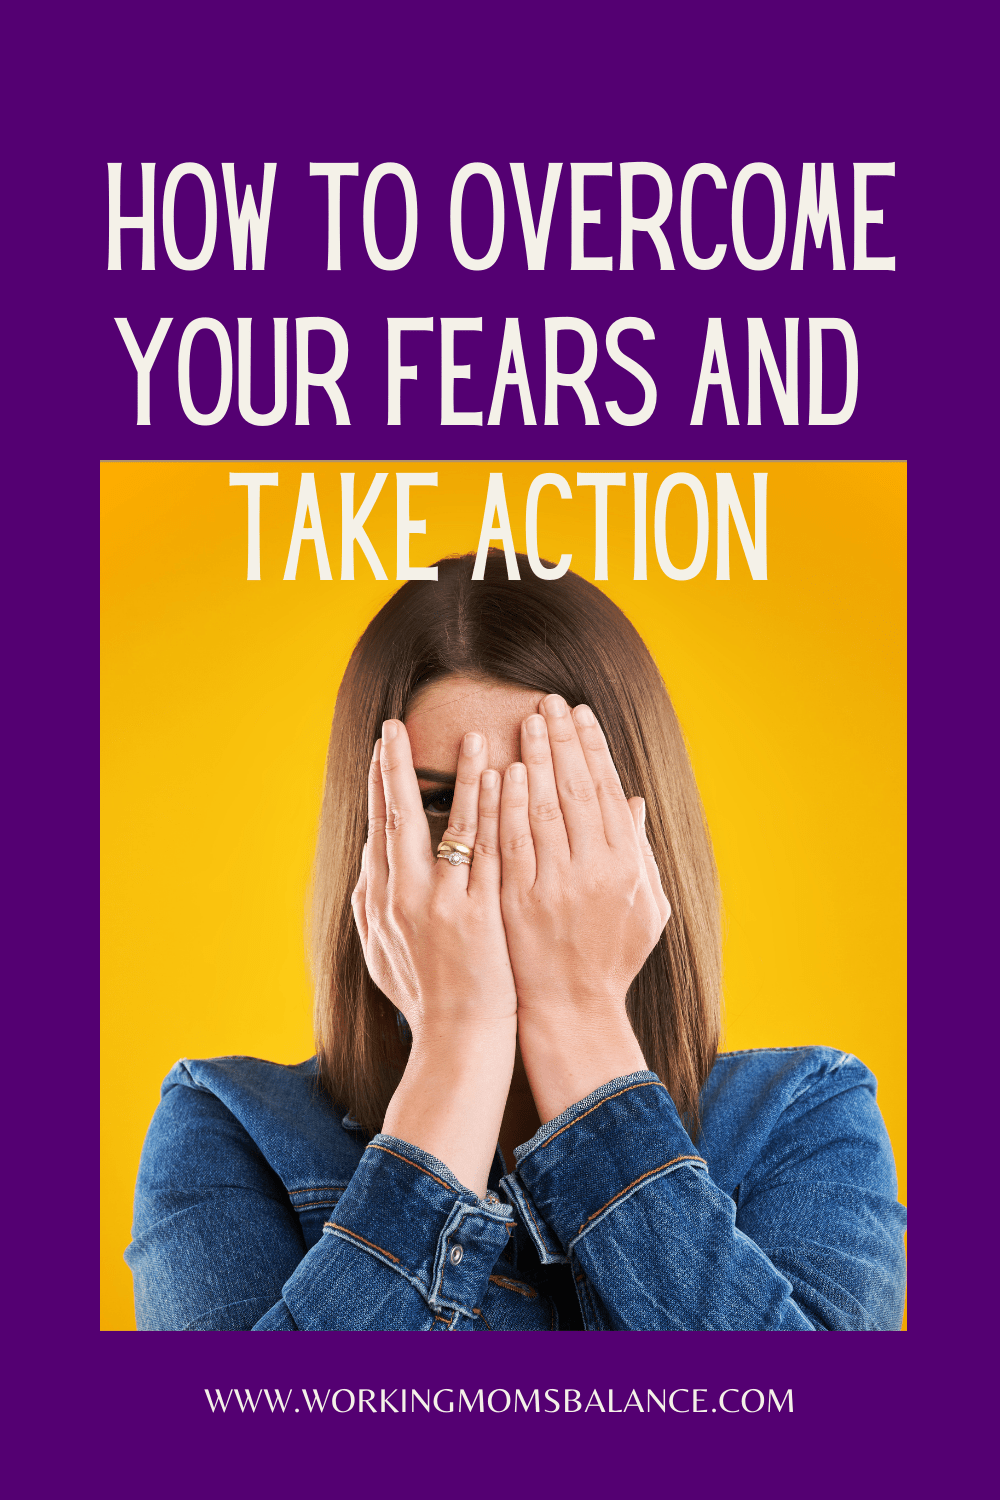 Fear is just a sensation in your body. Learn how to overcome your fears and take action on your biggest goals. Turn fear into usable energy.